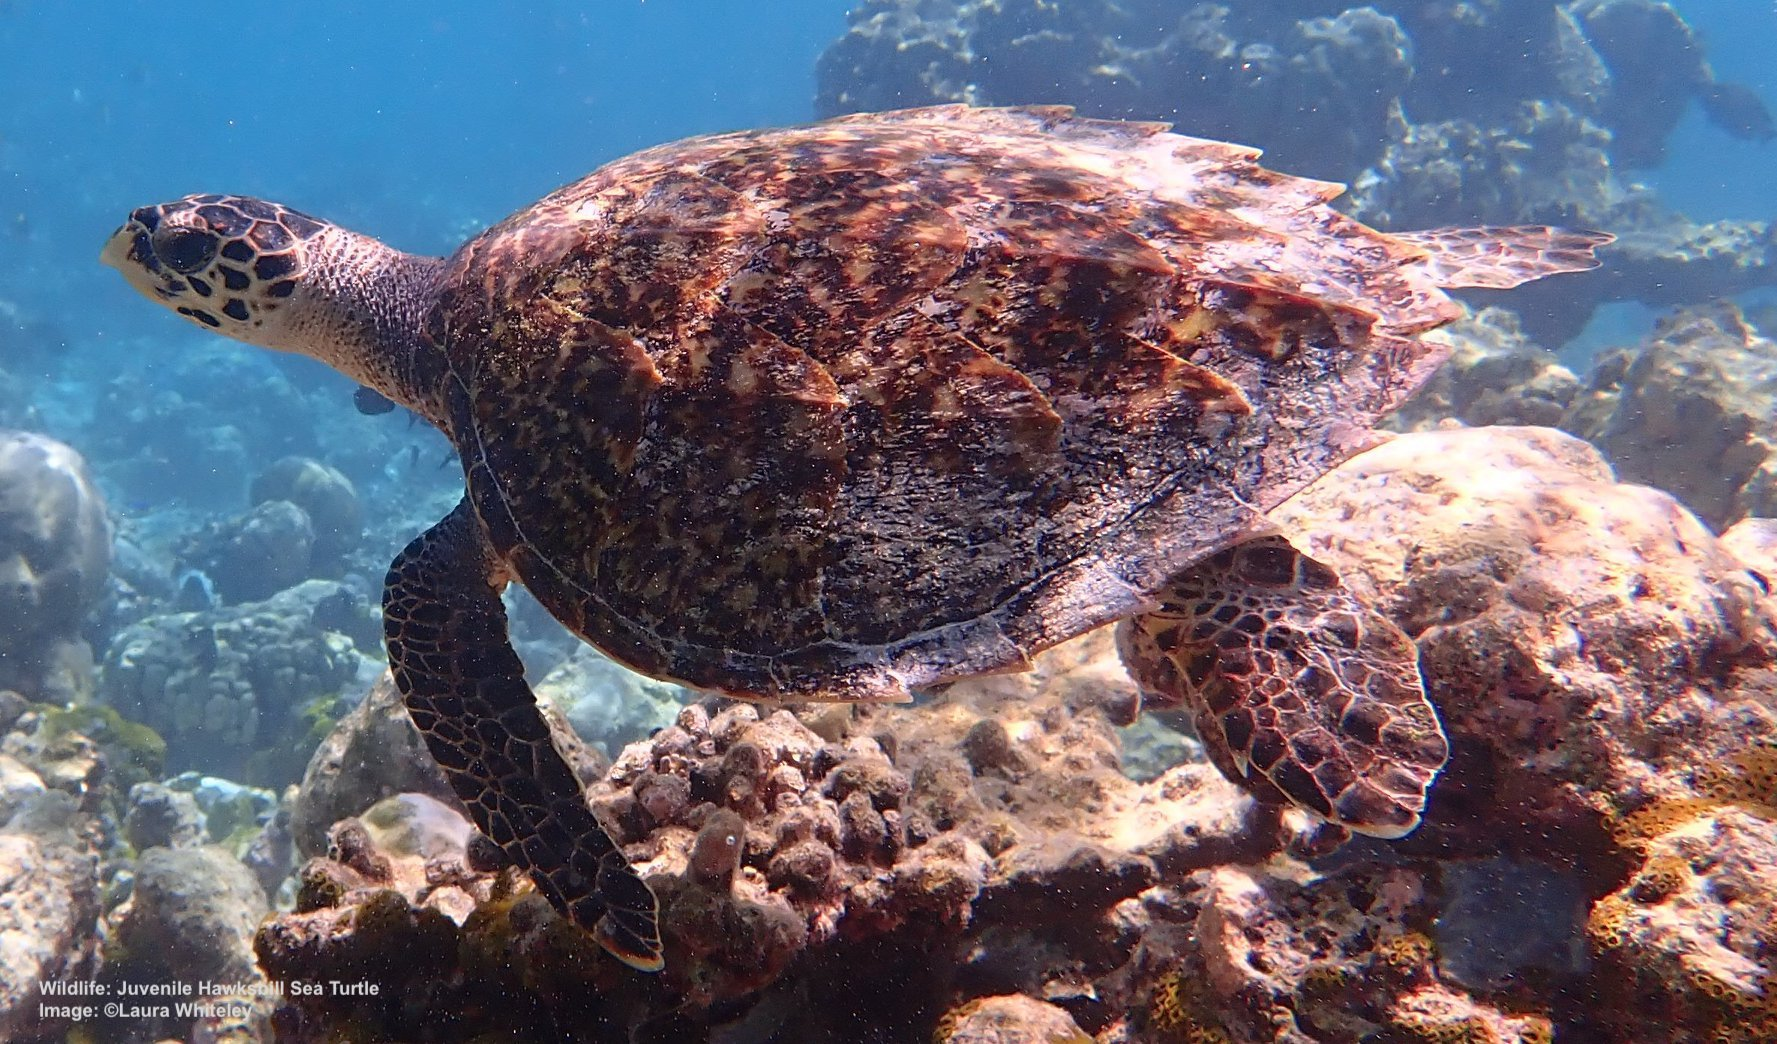 THE NATURAL BEAUTY OF THEIR SHELLS, MADE INTO JEWELRY AND TRINKETS, HAS DRIVEN THE HAWKSBILL SEA TURTLE TO A CRITICALLY ENDANGERED LISTING. IF IT LIVES, THIS JUVENILE  HAWKSBILL  WILL GROW TO ABOUT 70KG / 154 LBS. AND REACH SEXUAL MATURITY AT ABOUT 30 YEARS. IMAGE: LAURA WHITELEY, THANKS TO  THE OLIVE RIDLEY PROJECT